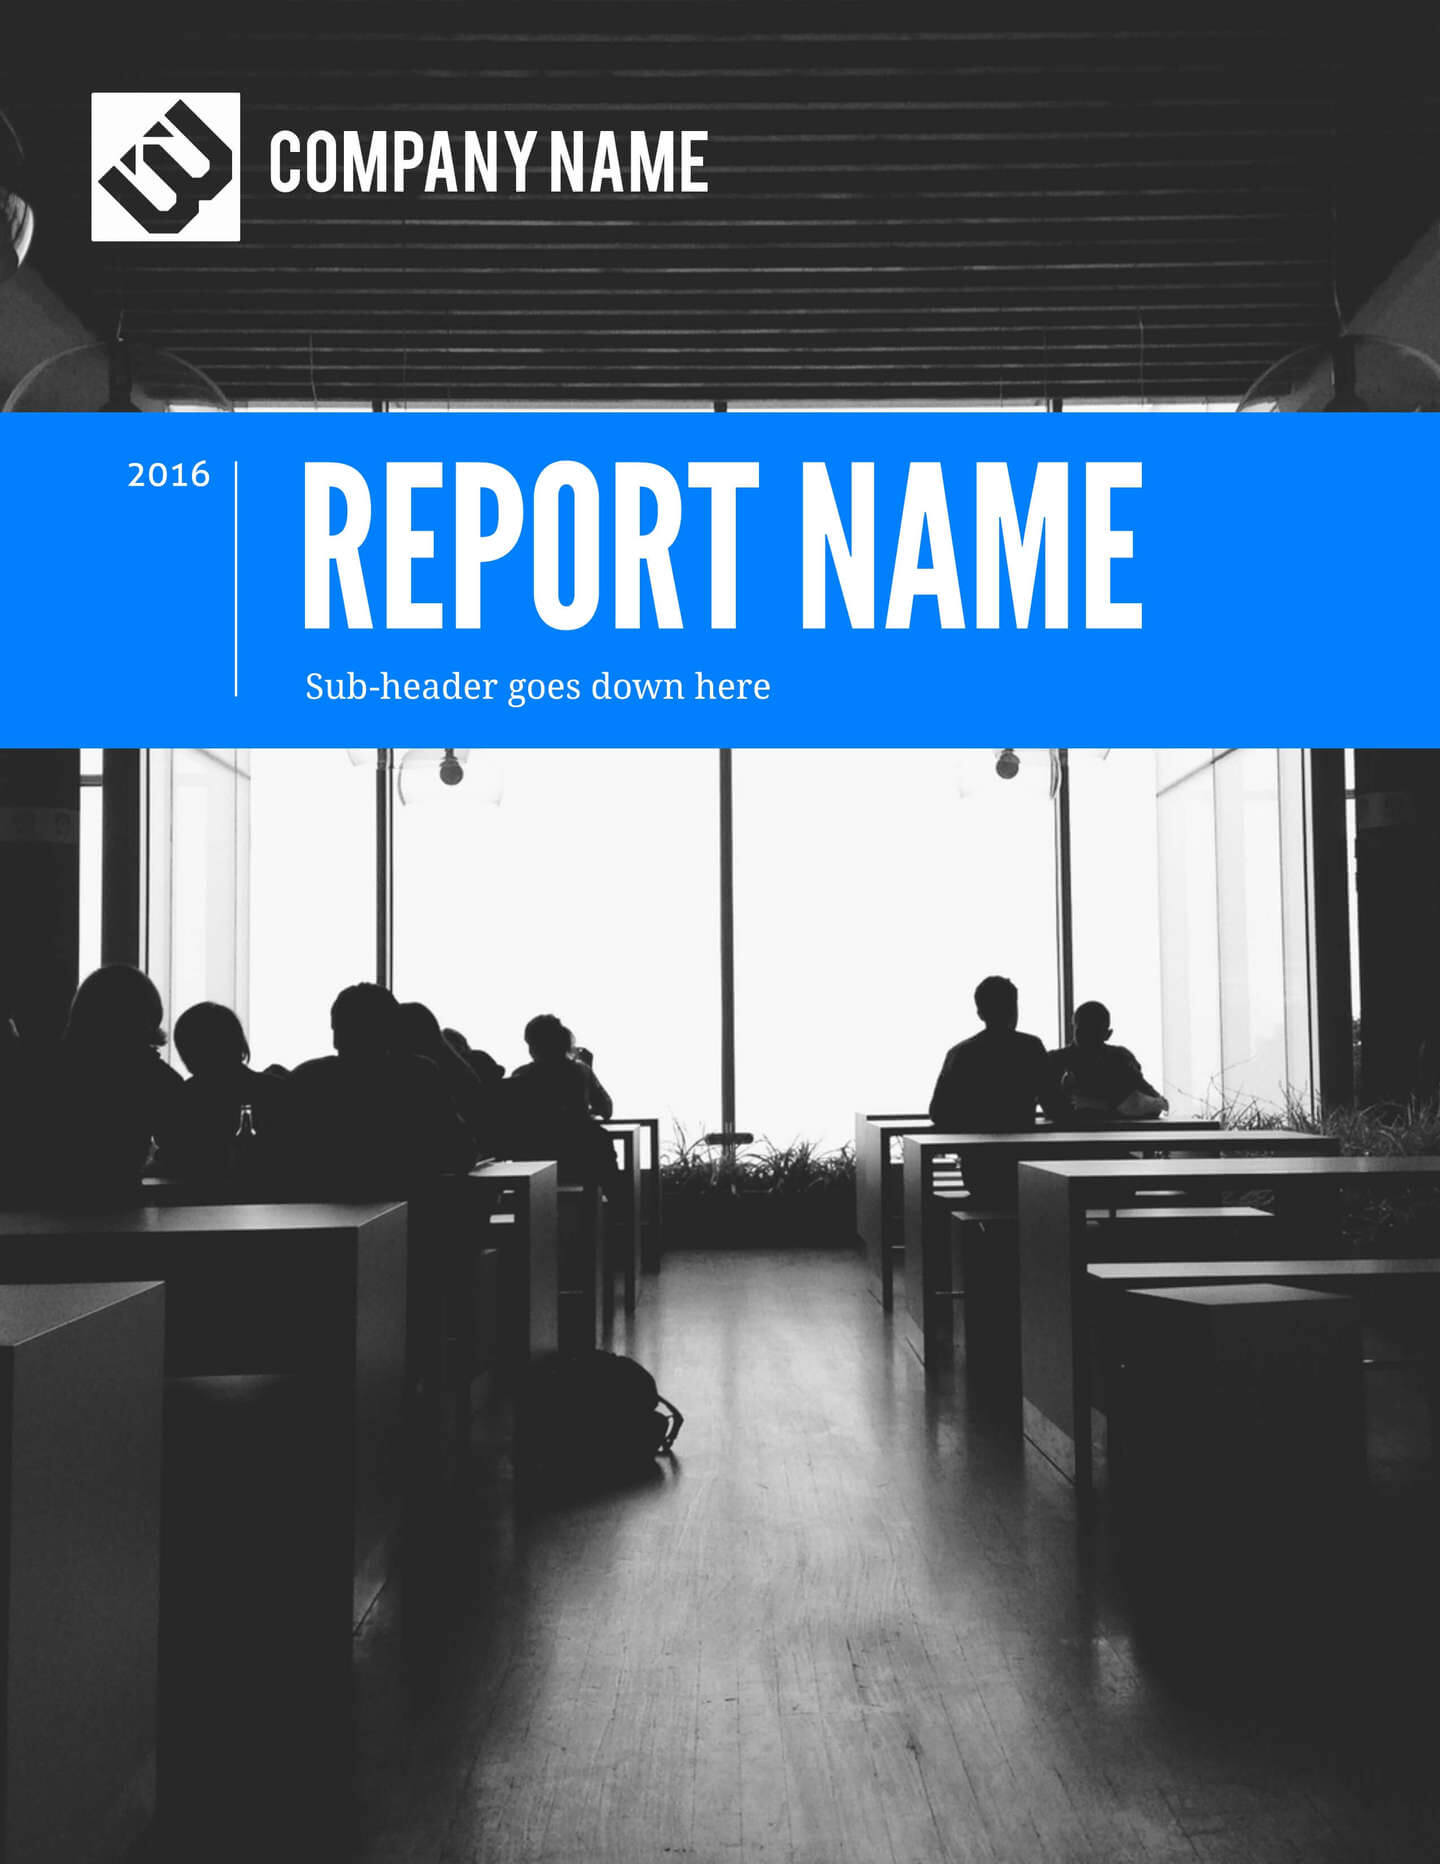 9 Free Report Templates & Examples - Lucidpress pertaining to Report Writing Template Free